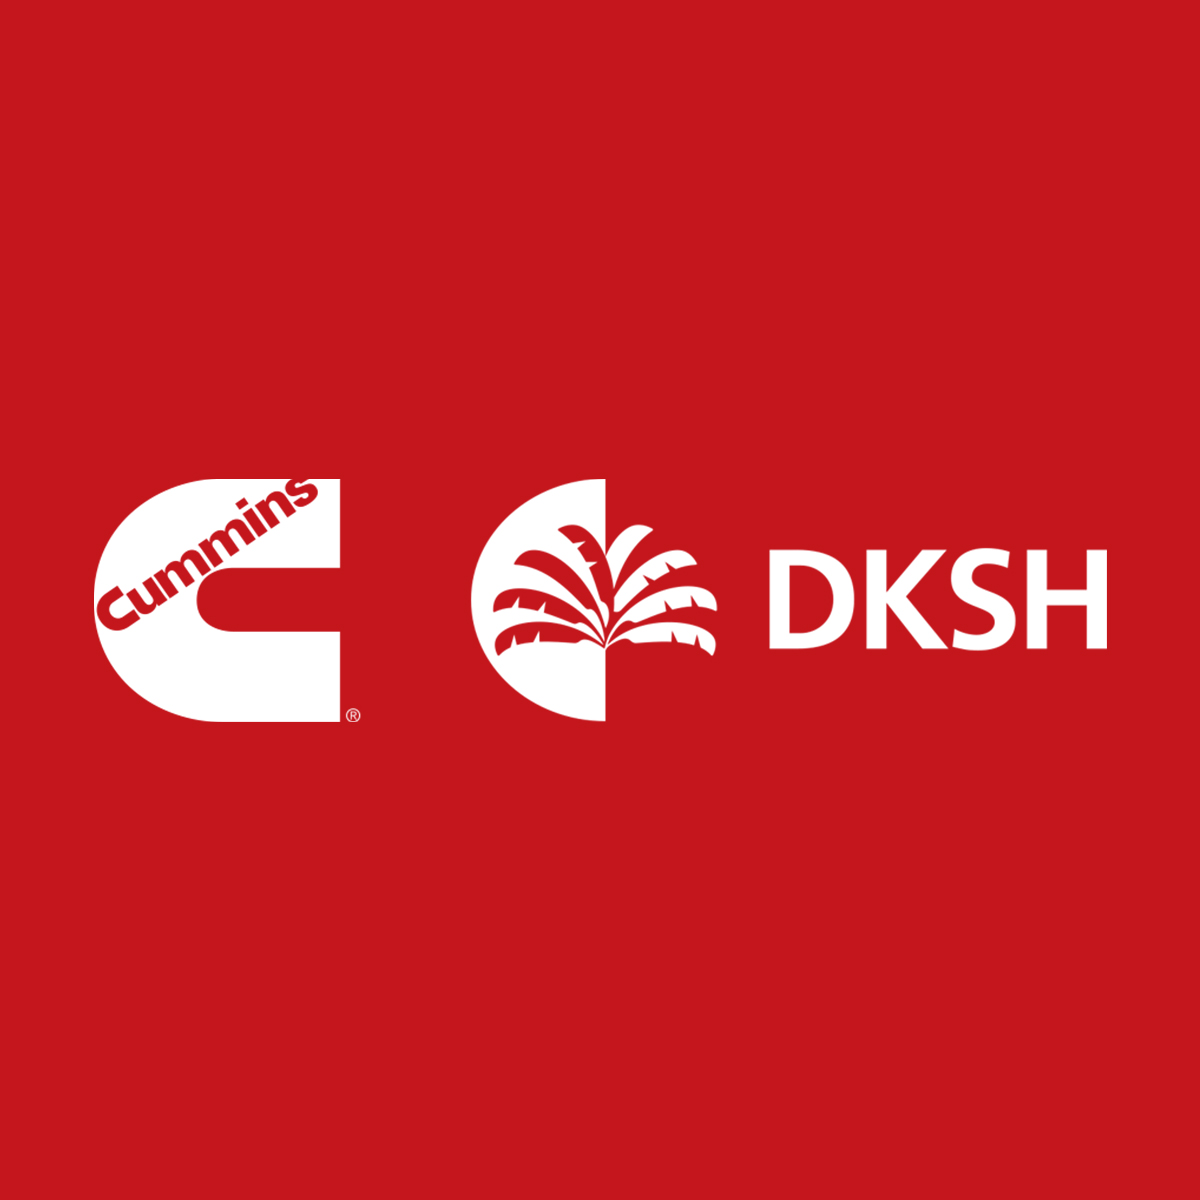 Cummins DKSH (Myanmar) Ltd.